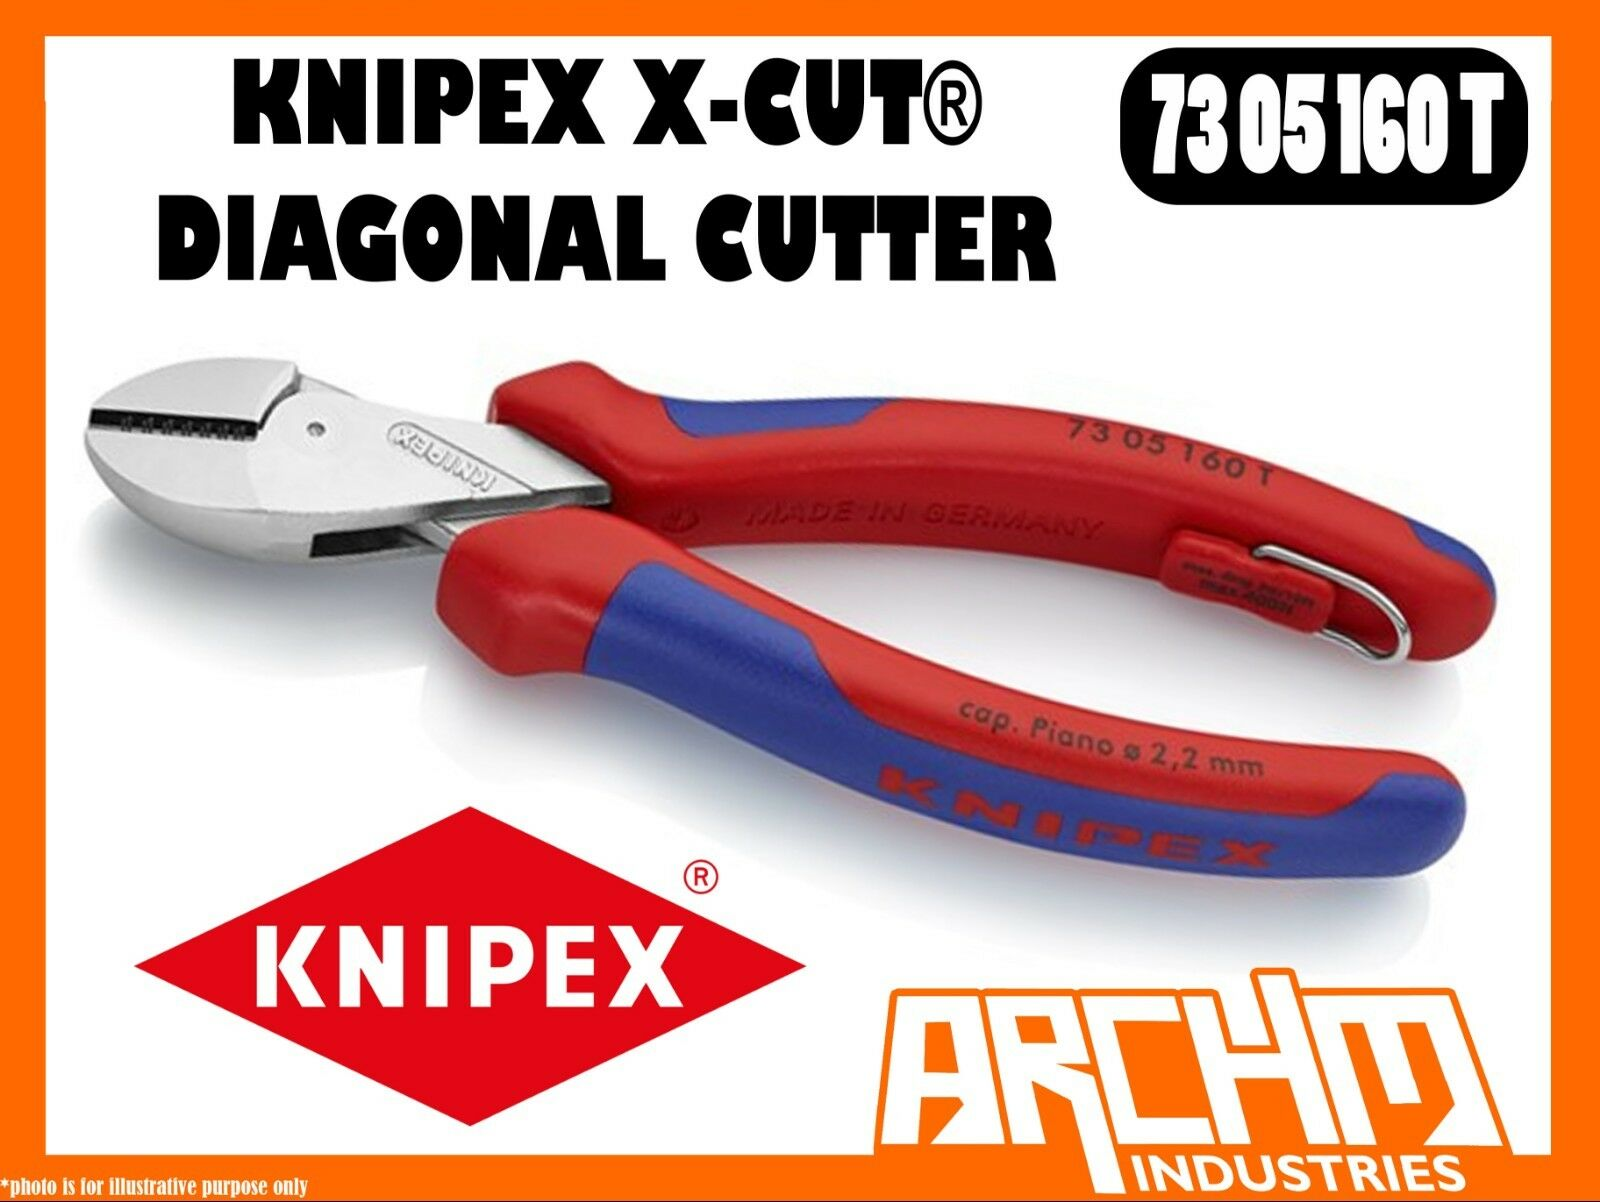 KNIPEX 7305160T - X-CUT ® DIAGONAL CUTTER TETHErot - 160MM - CABLES WIRES STEEL